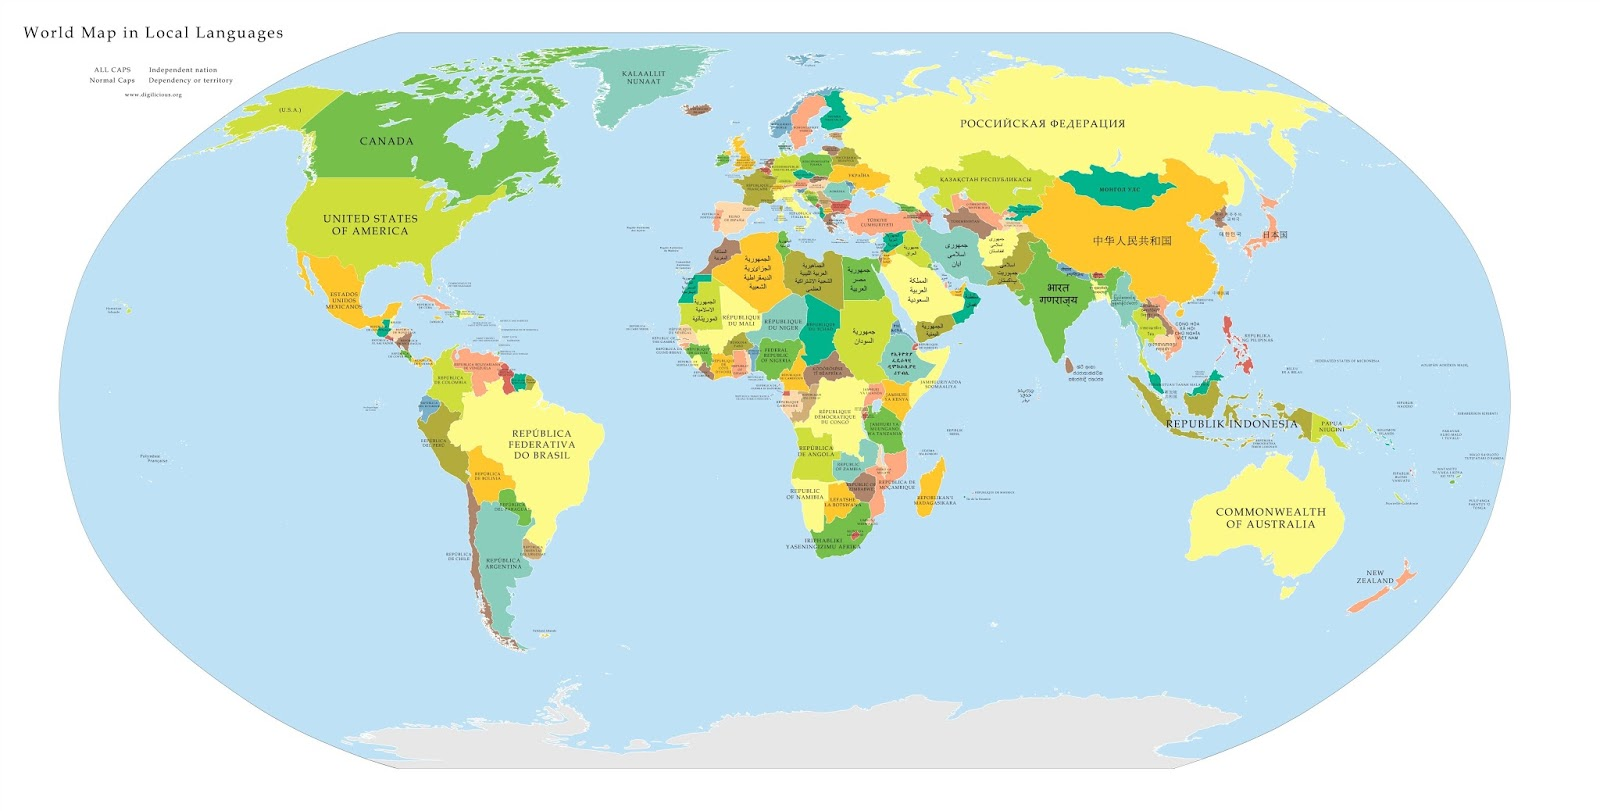 High Resolution political map of the world, with countries labeled in their native language